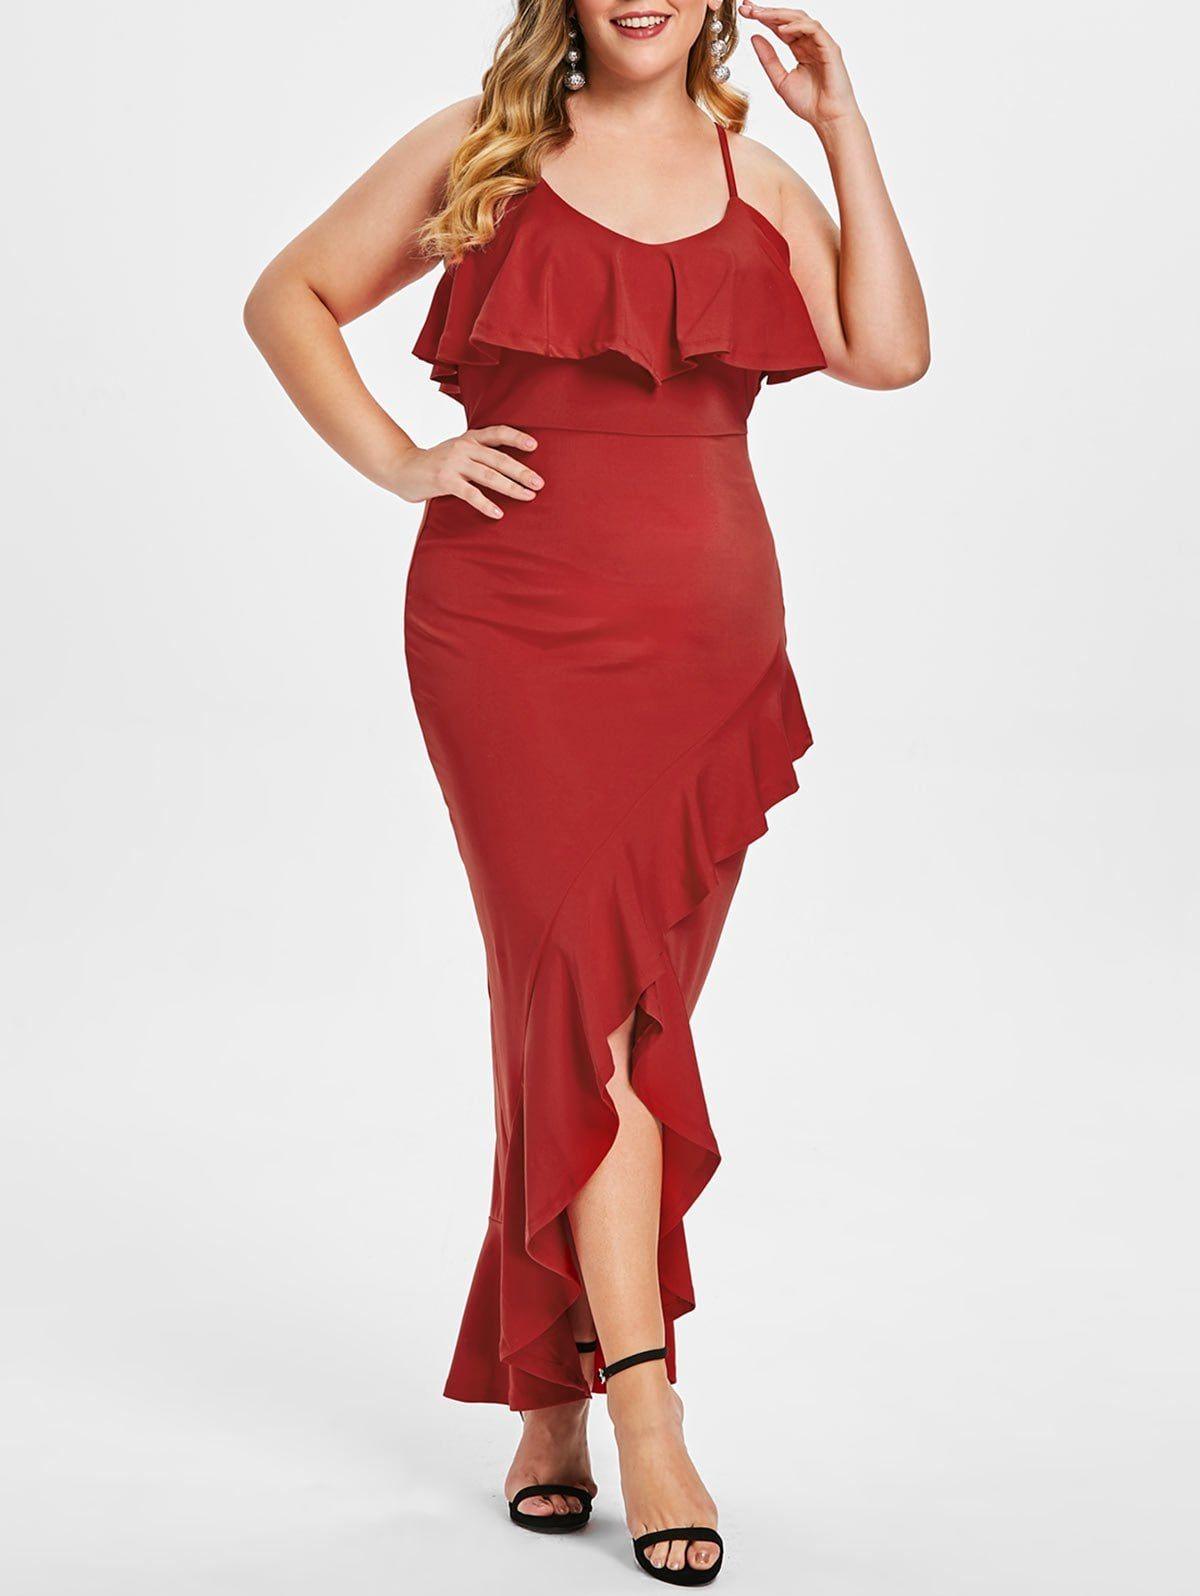 2970e50b81 Ruffle Hem Plus Size Asymmetrical Party Dress